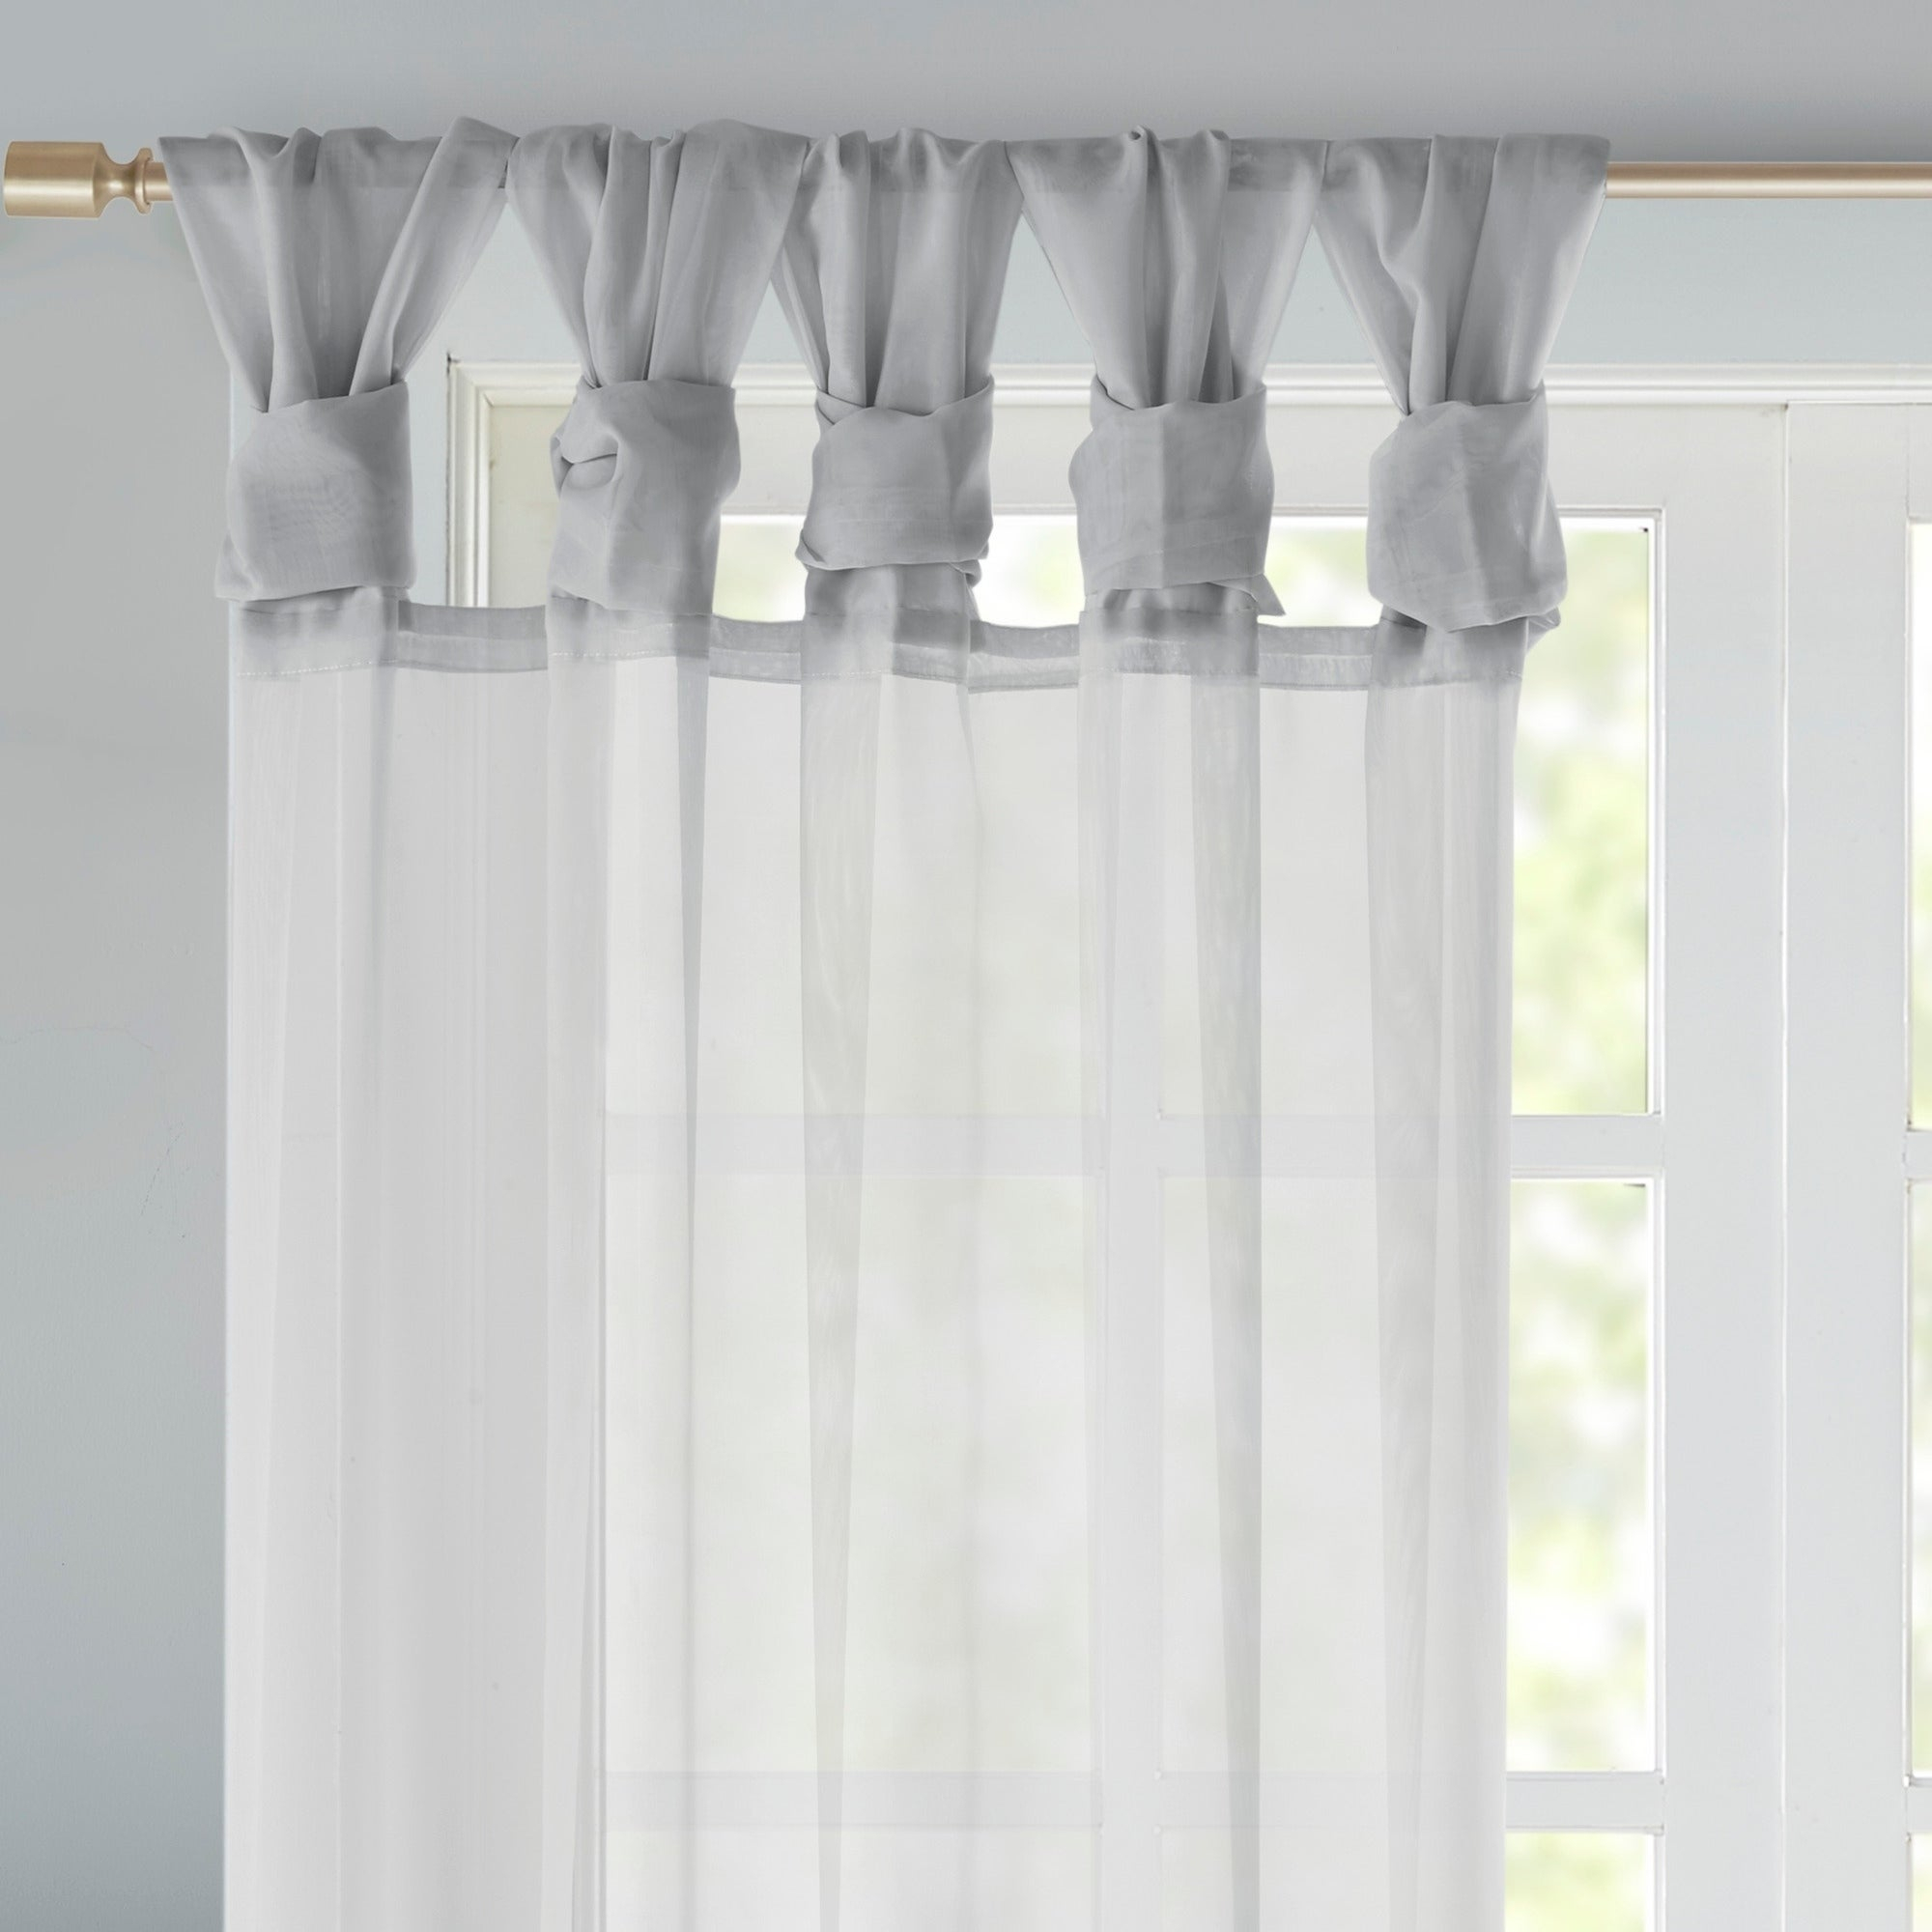 Madison Park Elowen White Twist Tab Voile Sheer Curtain Panel Pair With Regard To Elowen White Twist Tab Voile Sheer Curtain Panel Pairs (View 5 of 20)